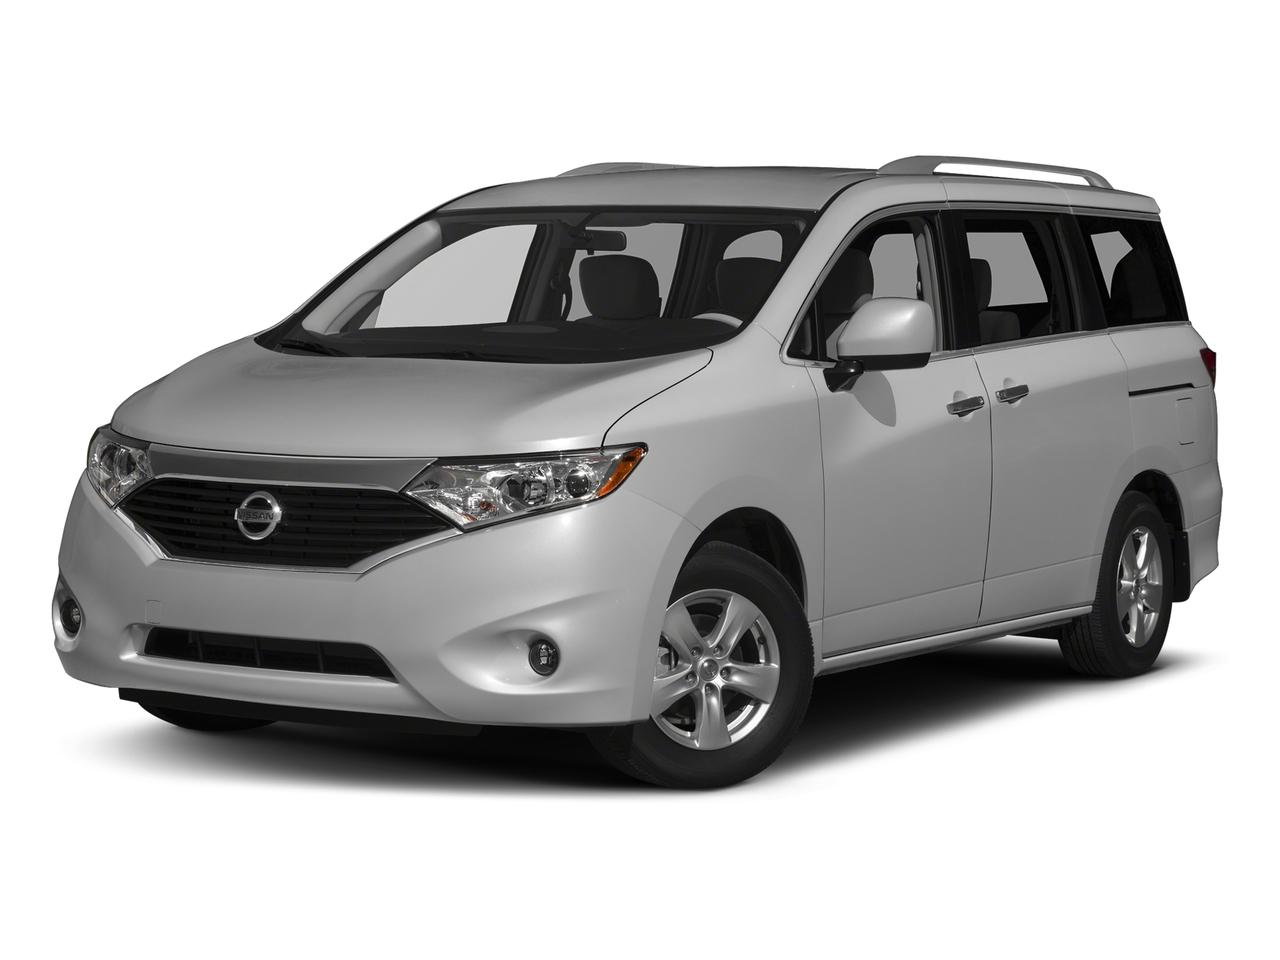 2016 Nissan Quest Vehicle Photo in Vincennes, IN 47591